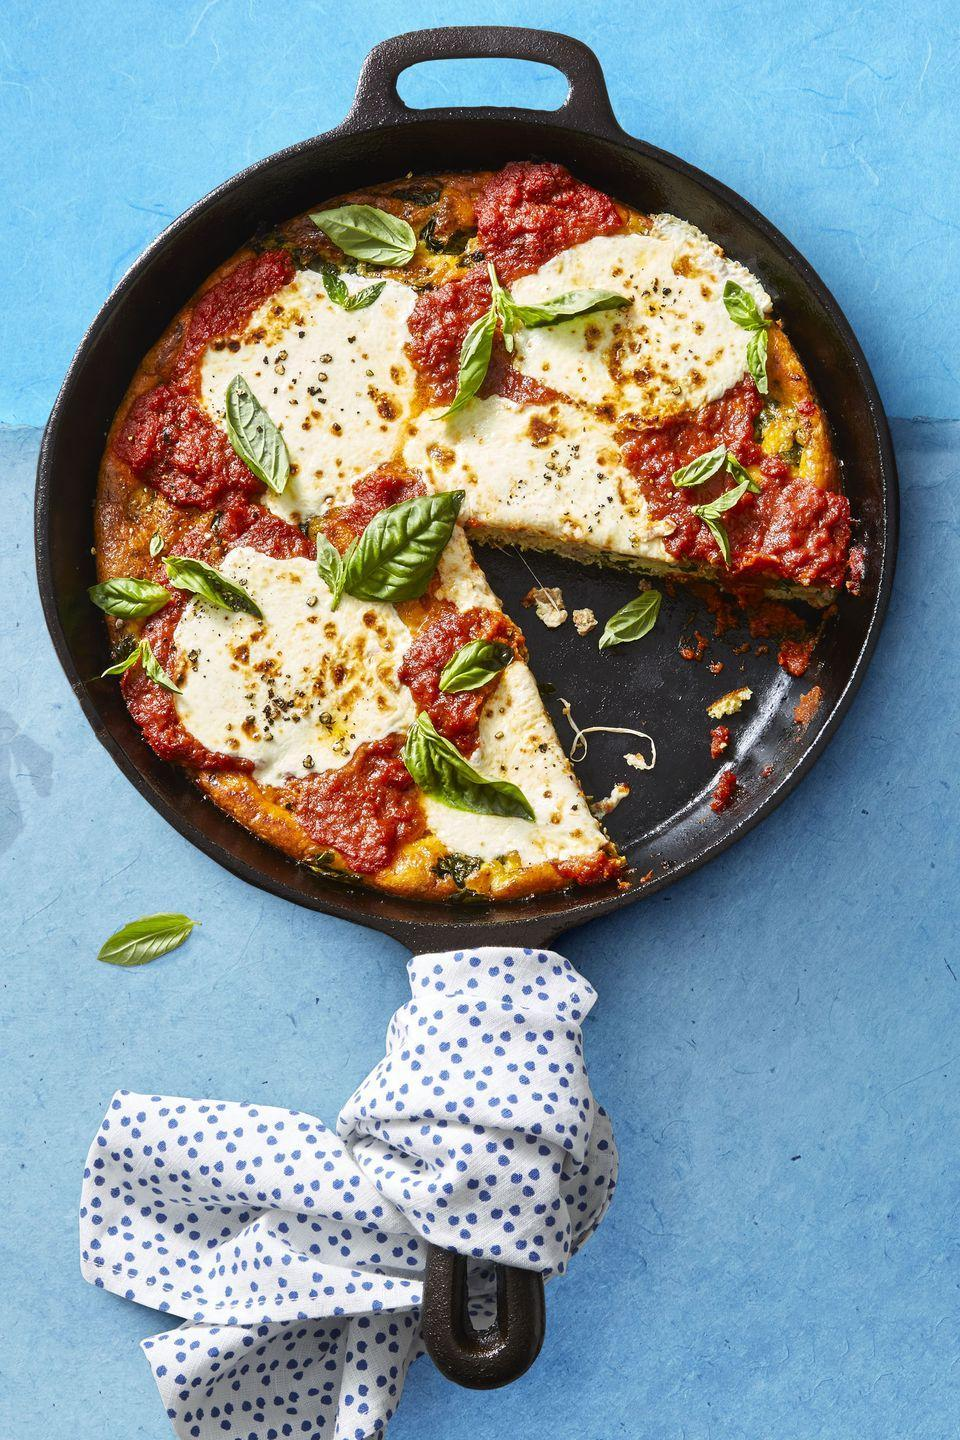 """<p>This saucy, cheesy frittata is so good that dad won't even notice the kale. </p><p><em><a href=""""https://www.goodhousekeeping.com/food-recipes/easy/a46937/tuscan-sausage-and-kale-frittata-recipe/"""" rel=""""nofollow noopener"""" target=""""_blank"""" data-ylk=""""slk:Get the recipe for Tuscan, Sausage, and Kale Frittata »"""" class=""""link rapid-noclick-resp"""">Get the recipe for Tuscan, Sausage, and Kale Frittata »</a></em> </p>"""